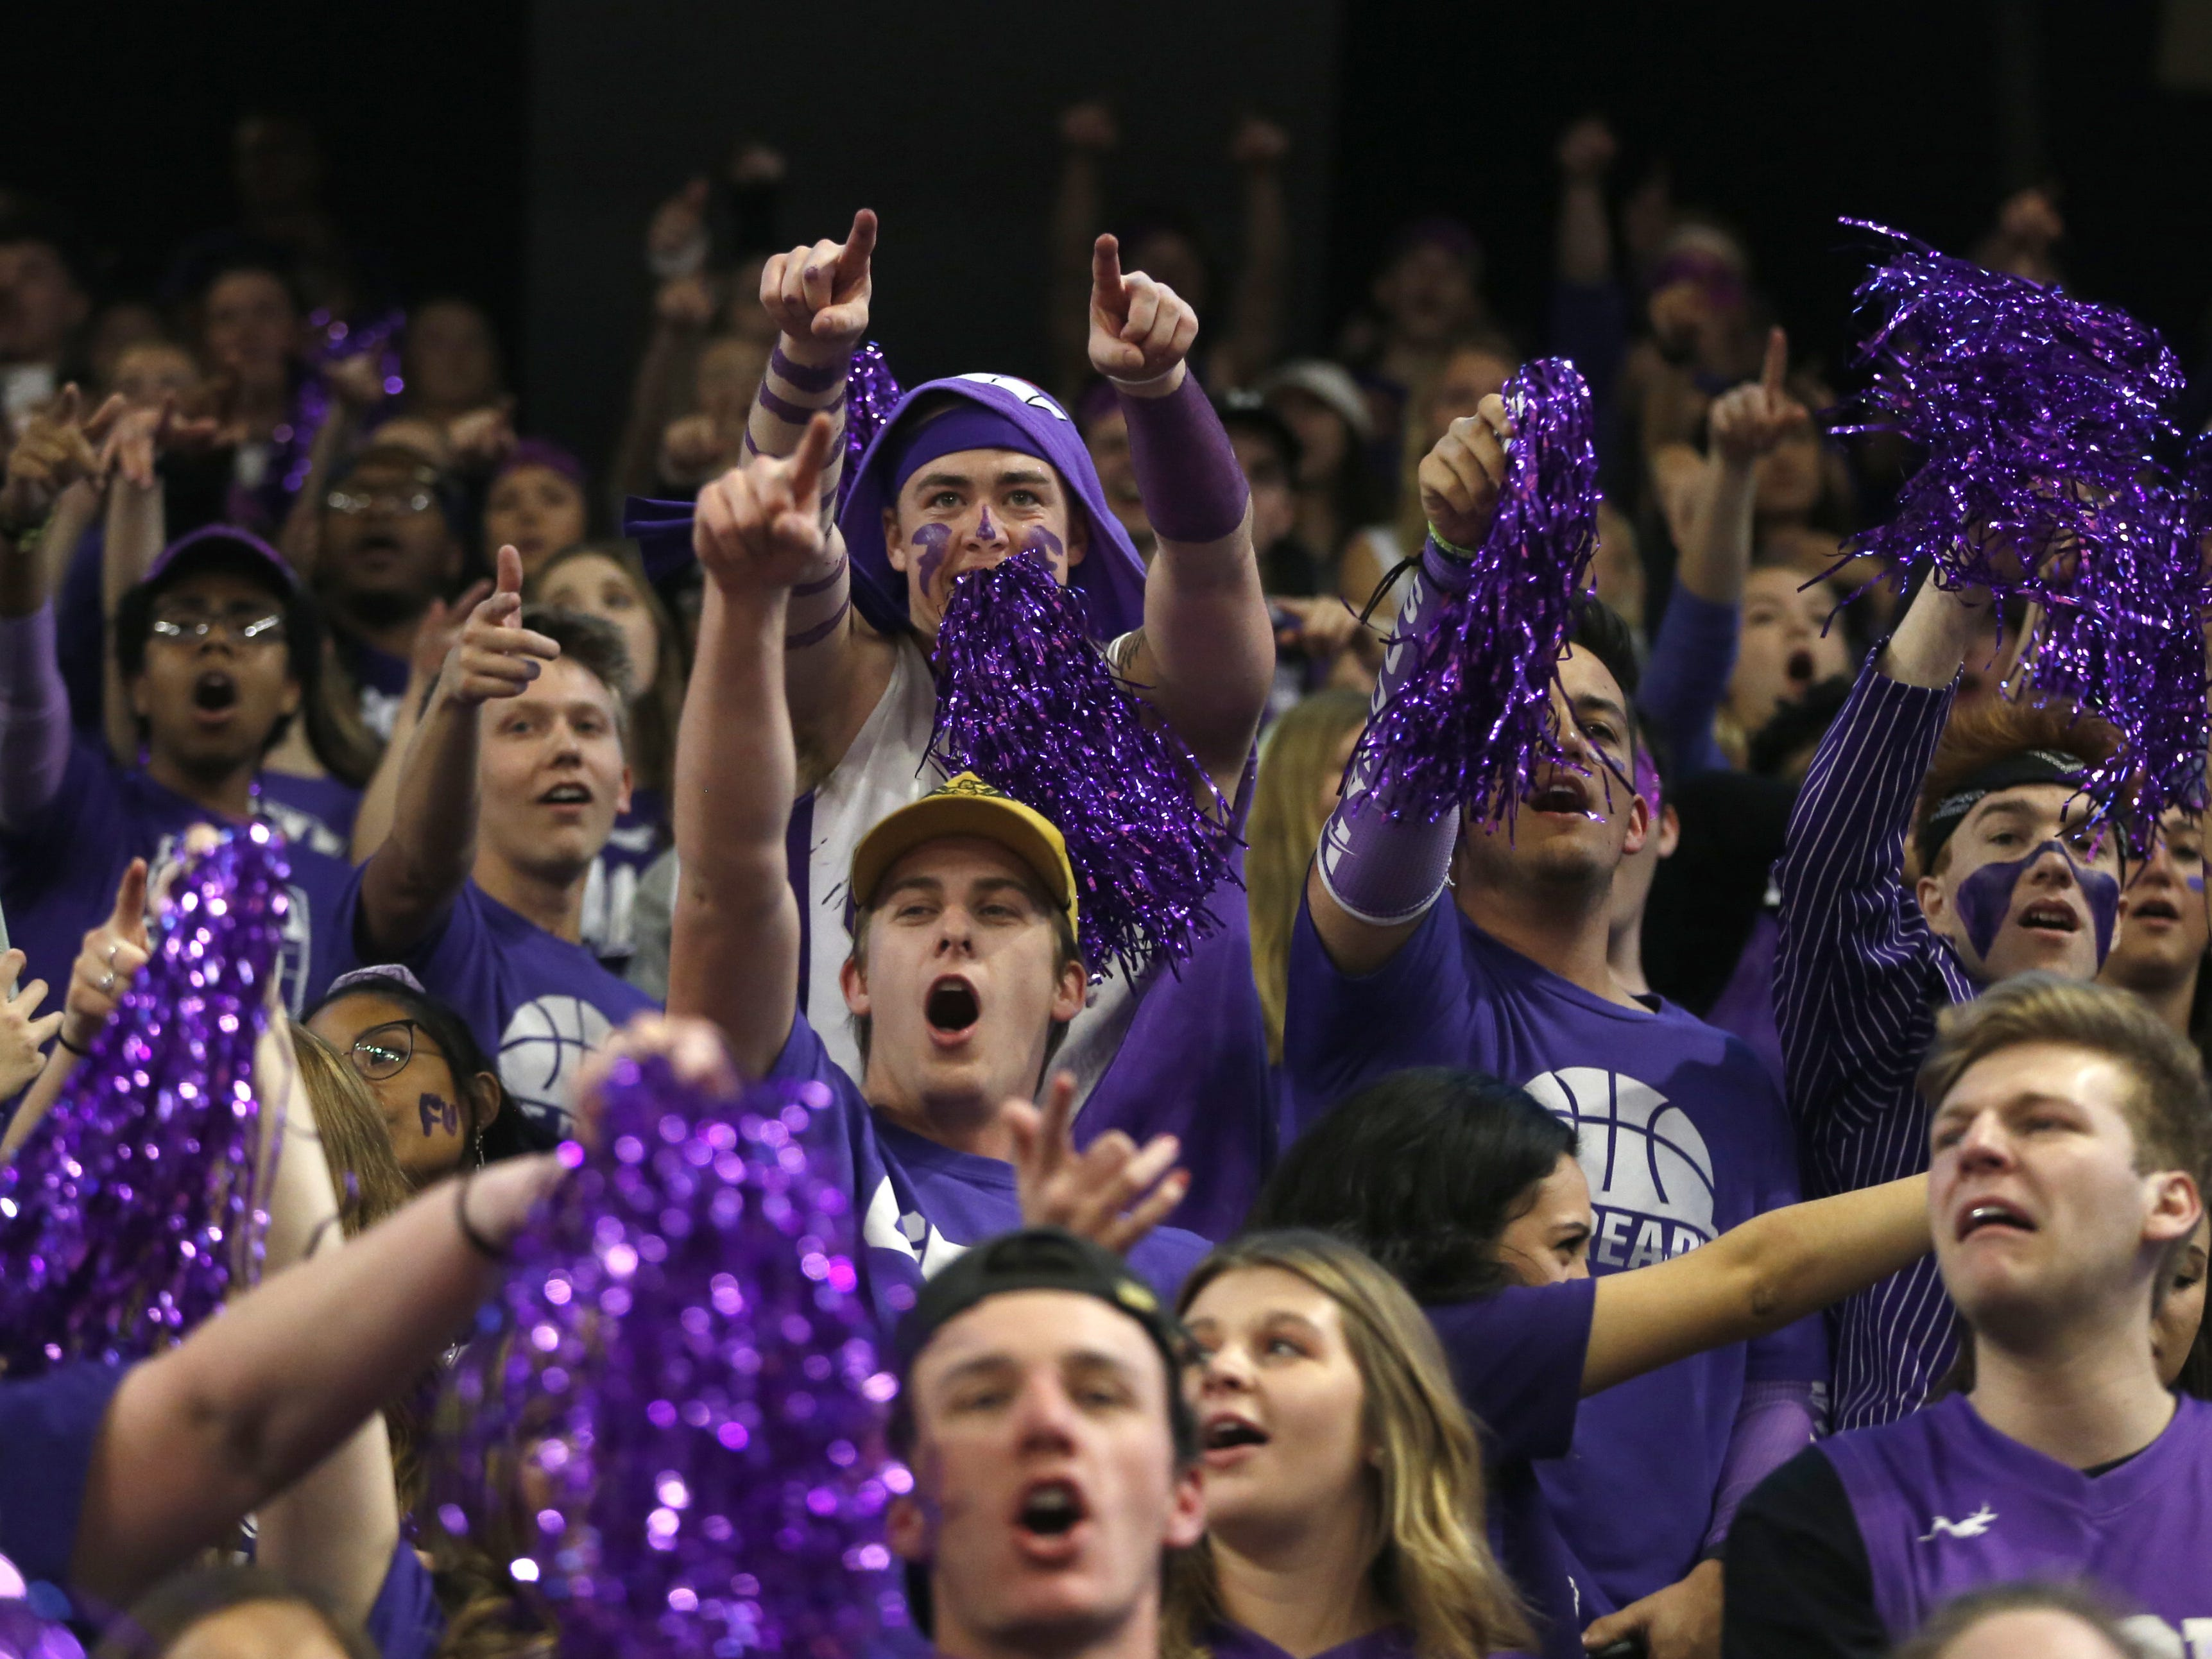 GCU fans call out the opposing team, New Mexico State prior to the first half at Grand Canyon University Arena in Phoenix, Ariz. on February 9, 2019.